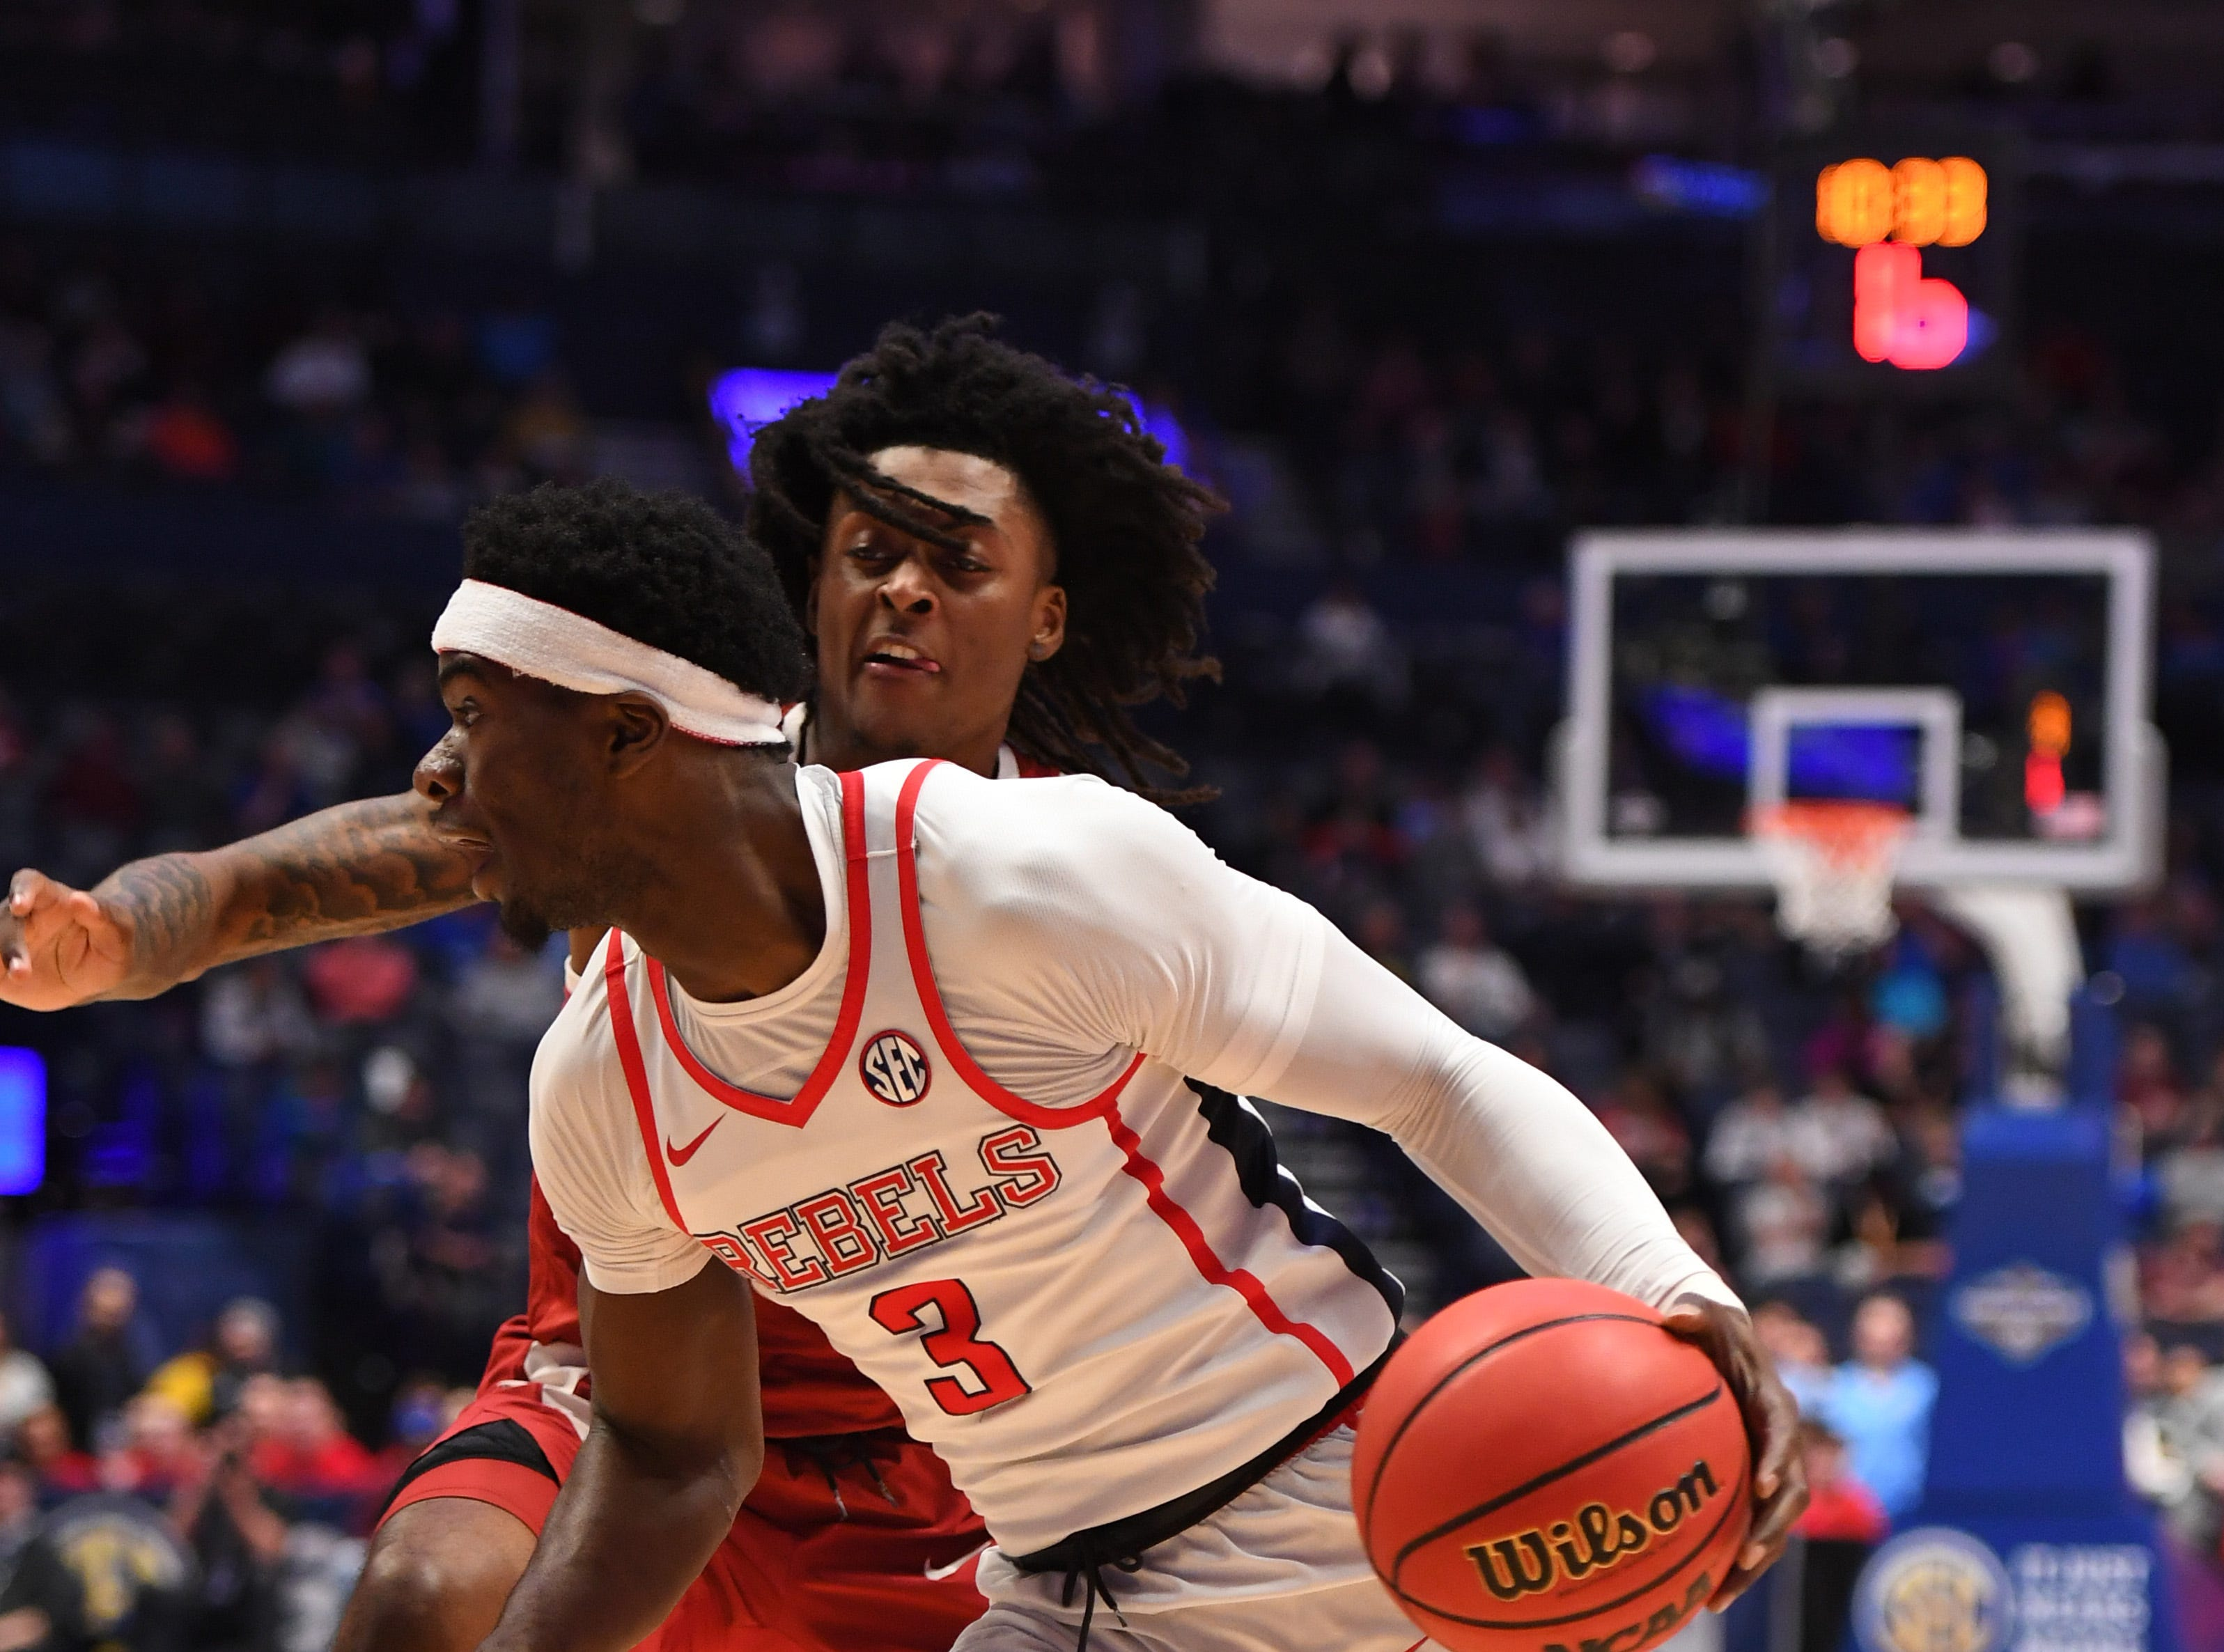 Mar 14, 2019; Nashville, TN, USA; Mississippi Rebels guard Terence Davis (3) drives to the basket against the Alabama Crimson Tide during the first half of the SEC conference tournament at Bridgestone Arena. Mandatory Credit: Christopher Hanewinckel-USA TODAY Sports